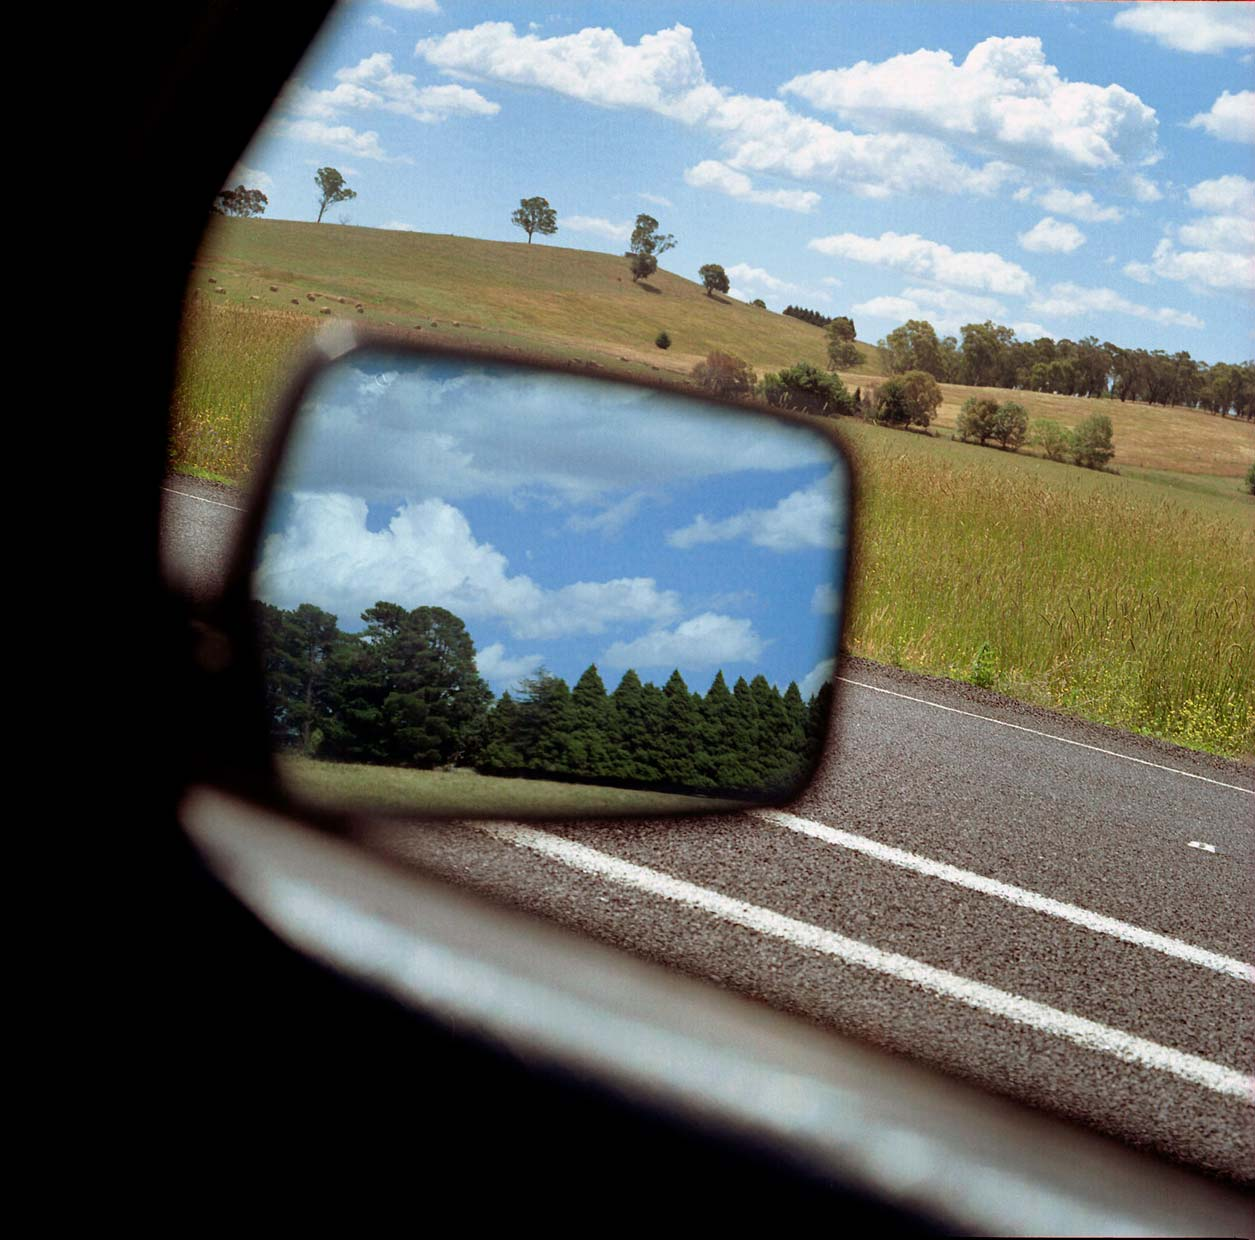 Rearview-mirror-farming-rural